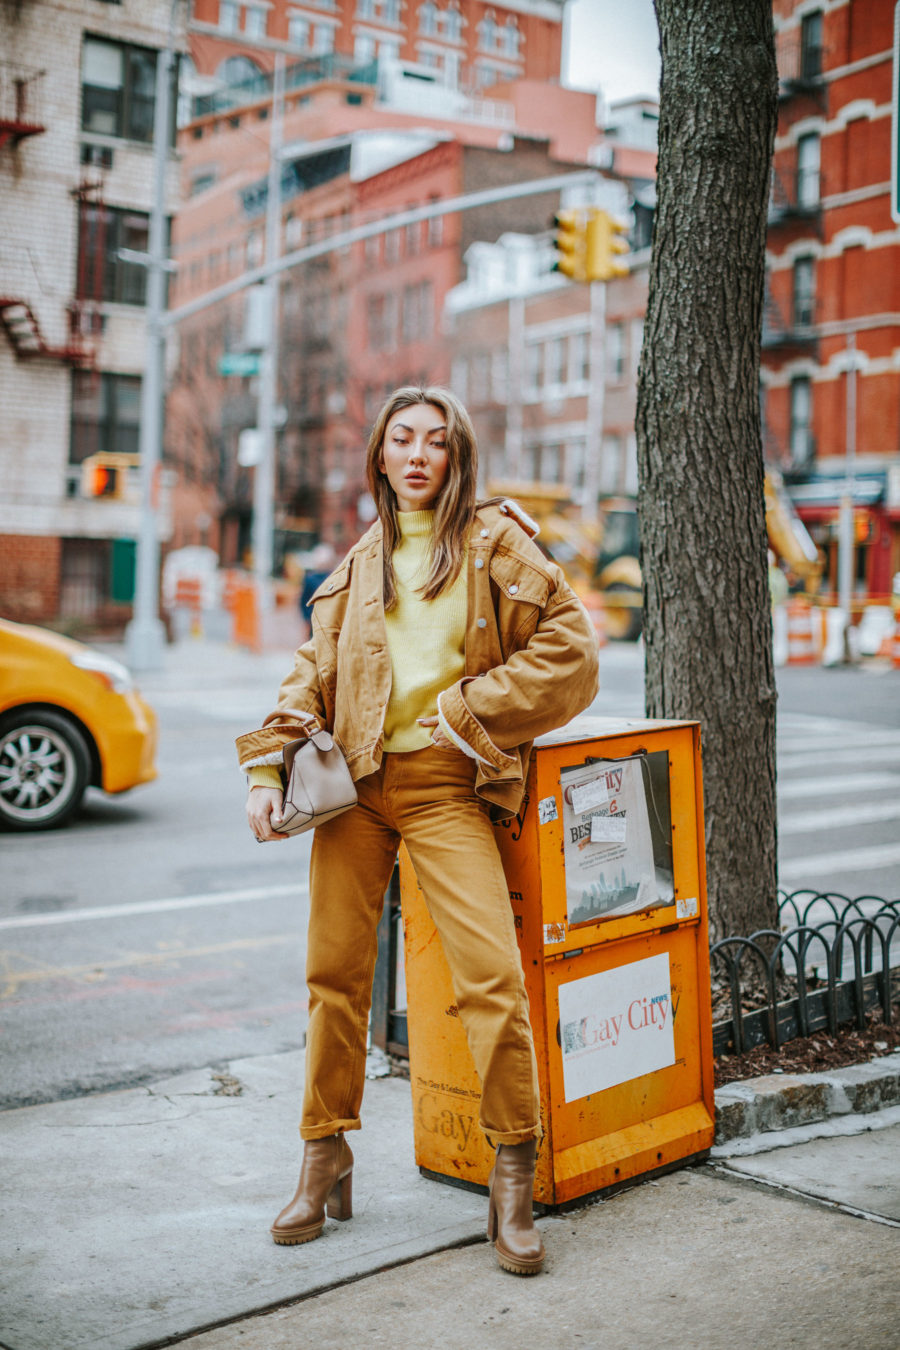 fashion blogger jessica wang wearing lug sole boots and sharing packing tips for a mini fall getaway // Jessica Wang - Notjessfashion.com